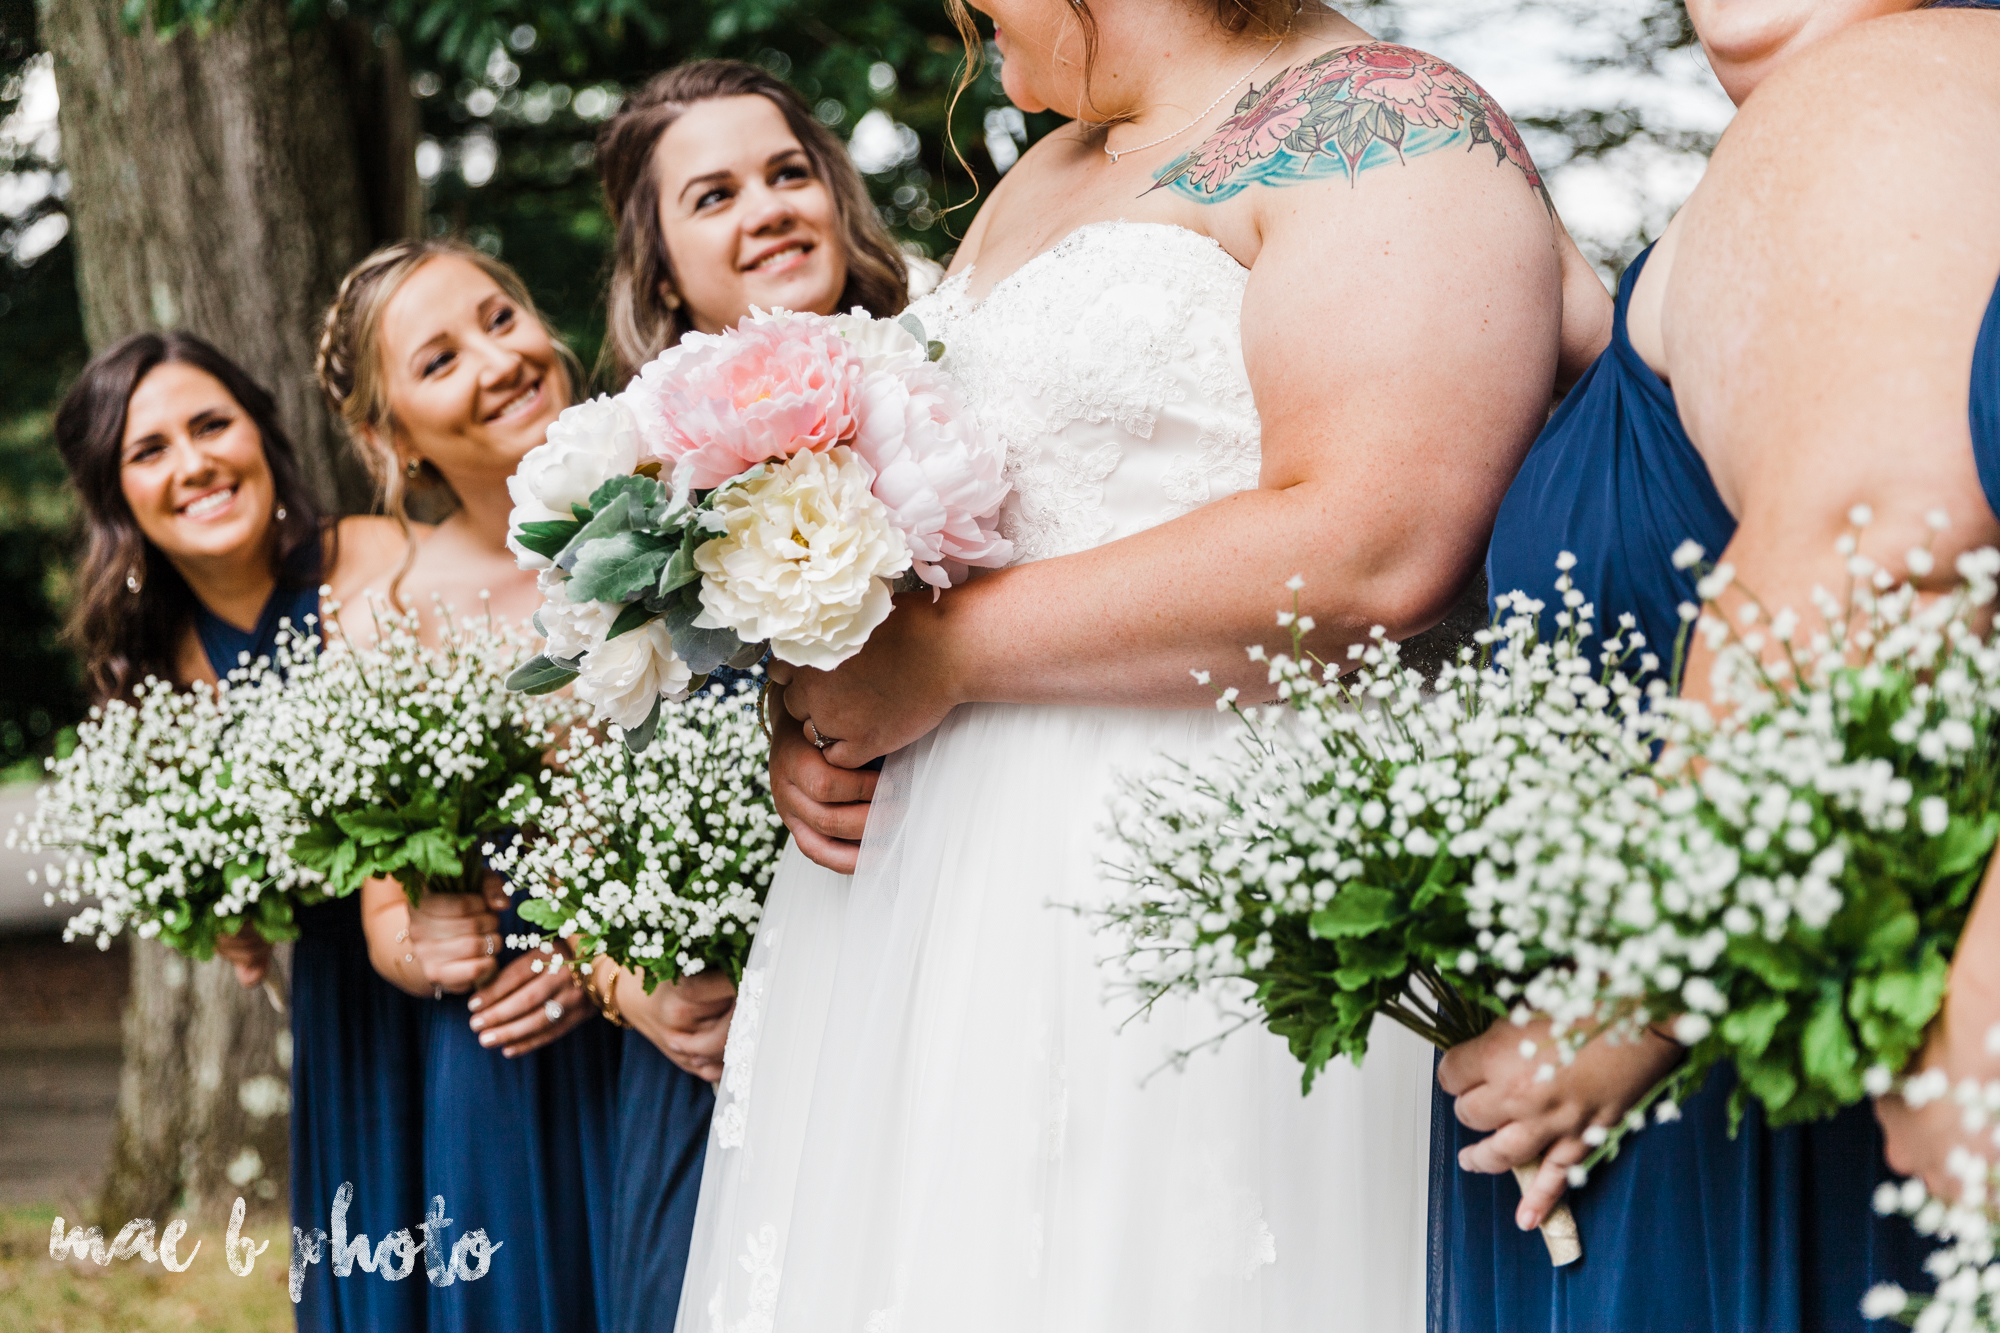 Kristina and ryan's personal vintage glam fall wedding at disalvo's station restaurant and the arnold palmer latrobe country club in latrobe, pa photographed by youngstown wedding photographer mae b photo-114.jpg